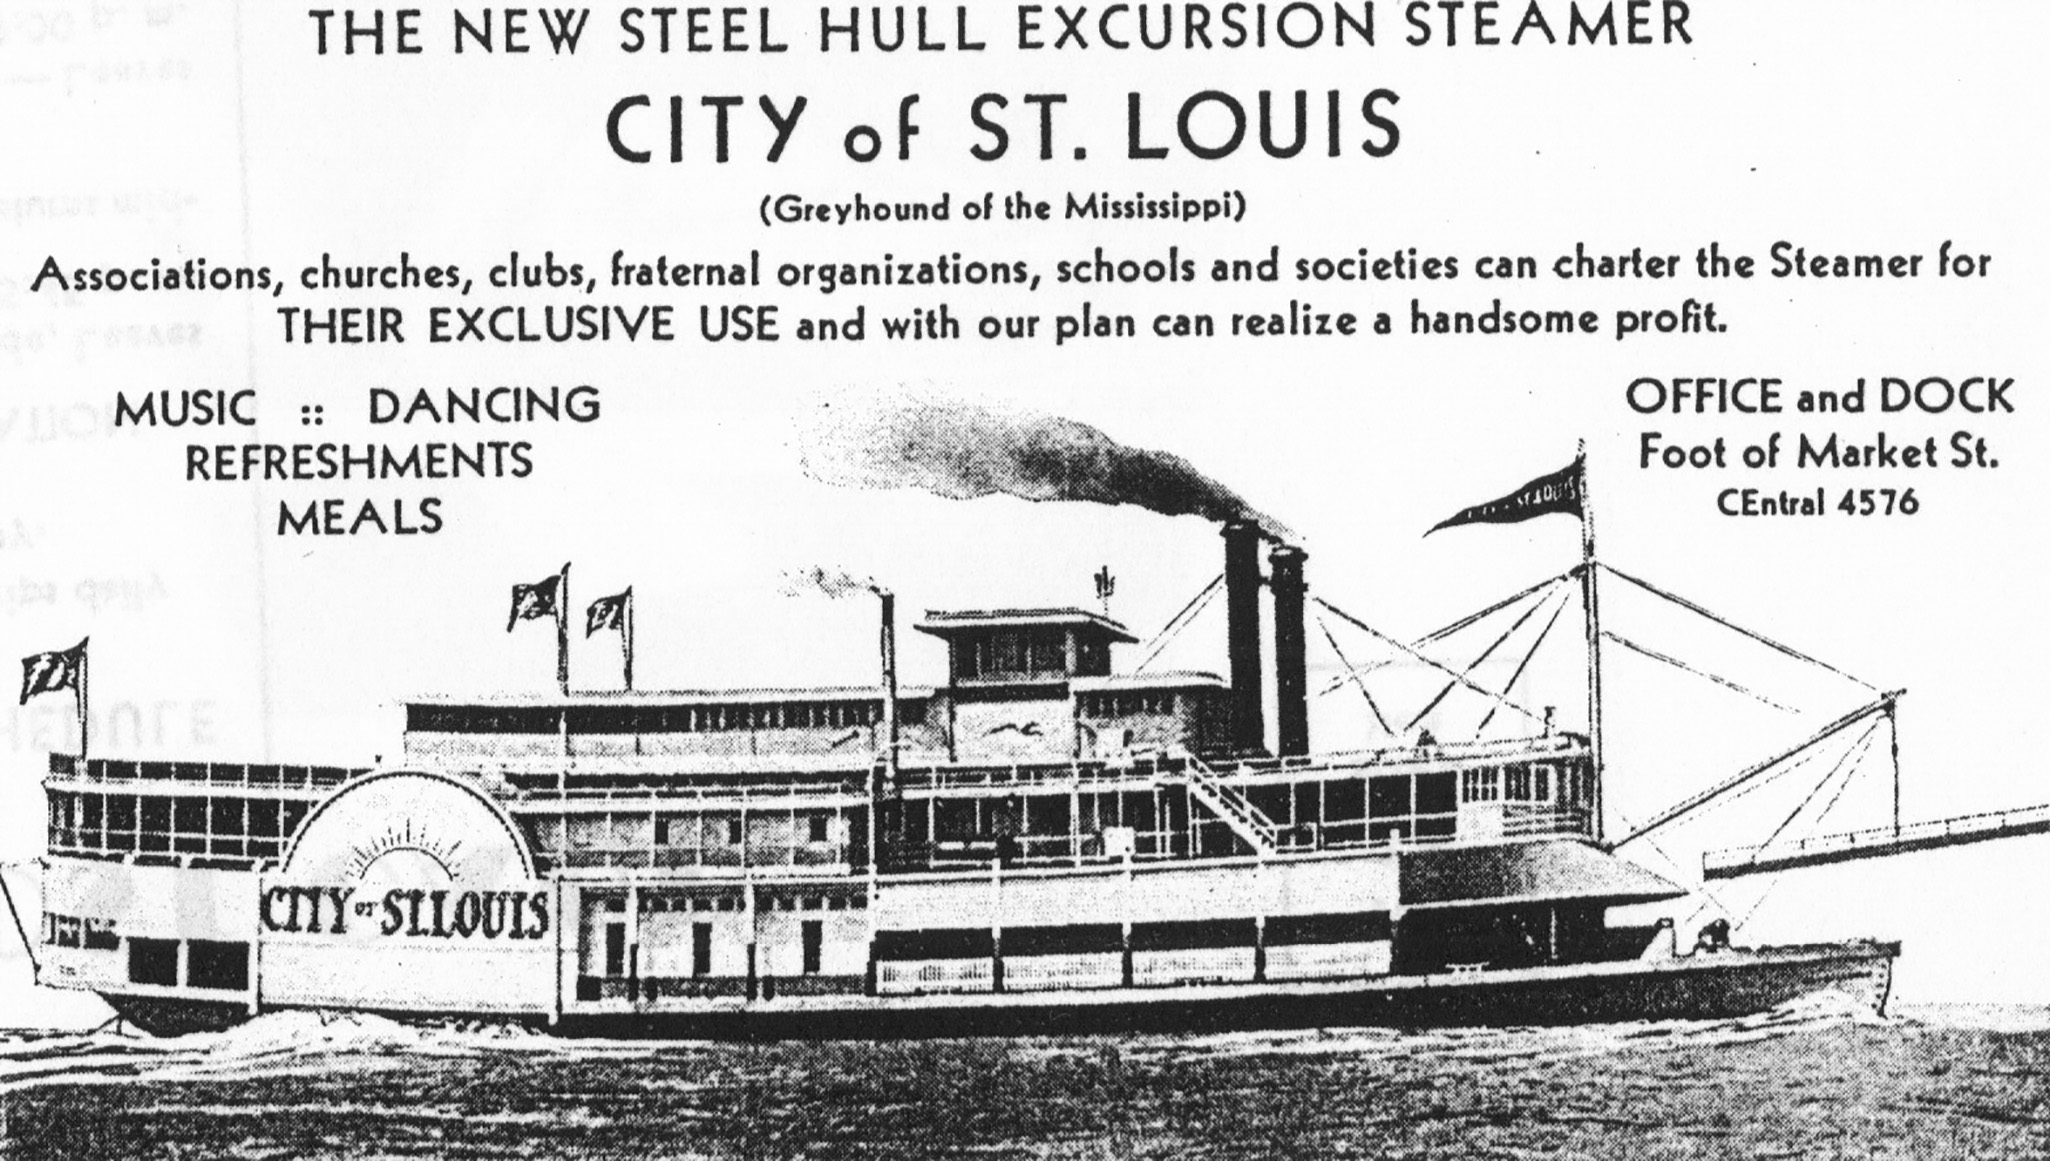 A 1930s advertisement of the steamer City of St. Louis. (Keith Norrington collection)